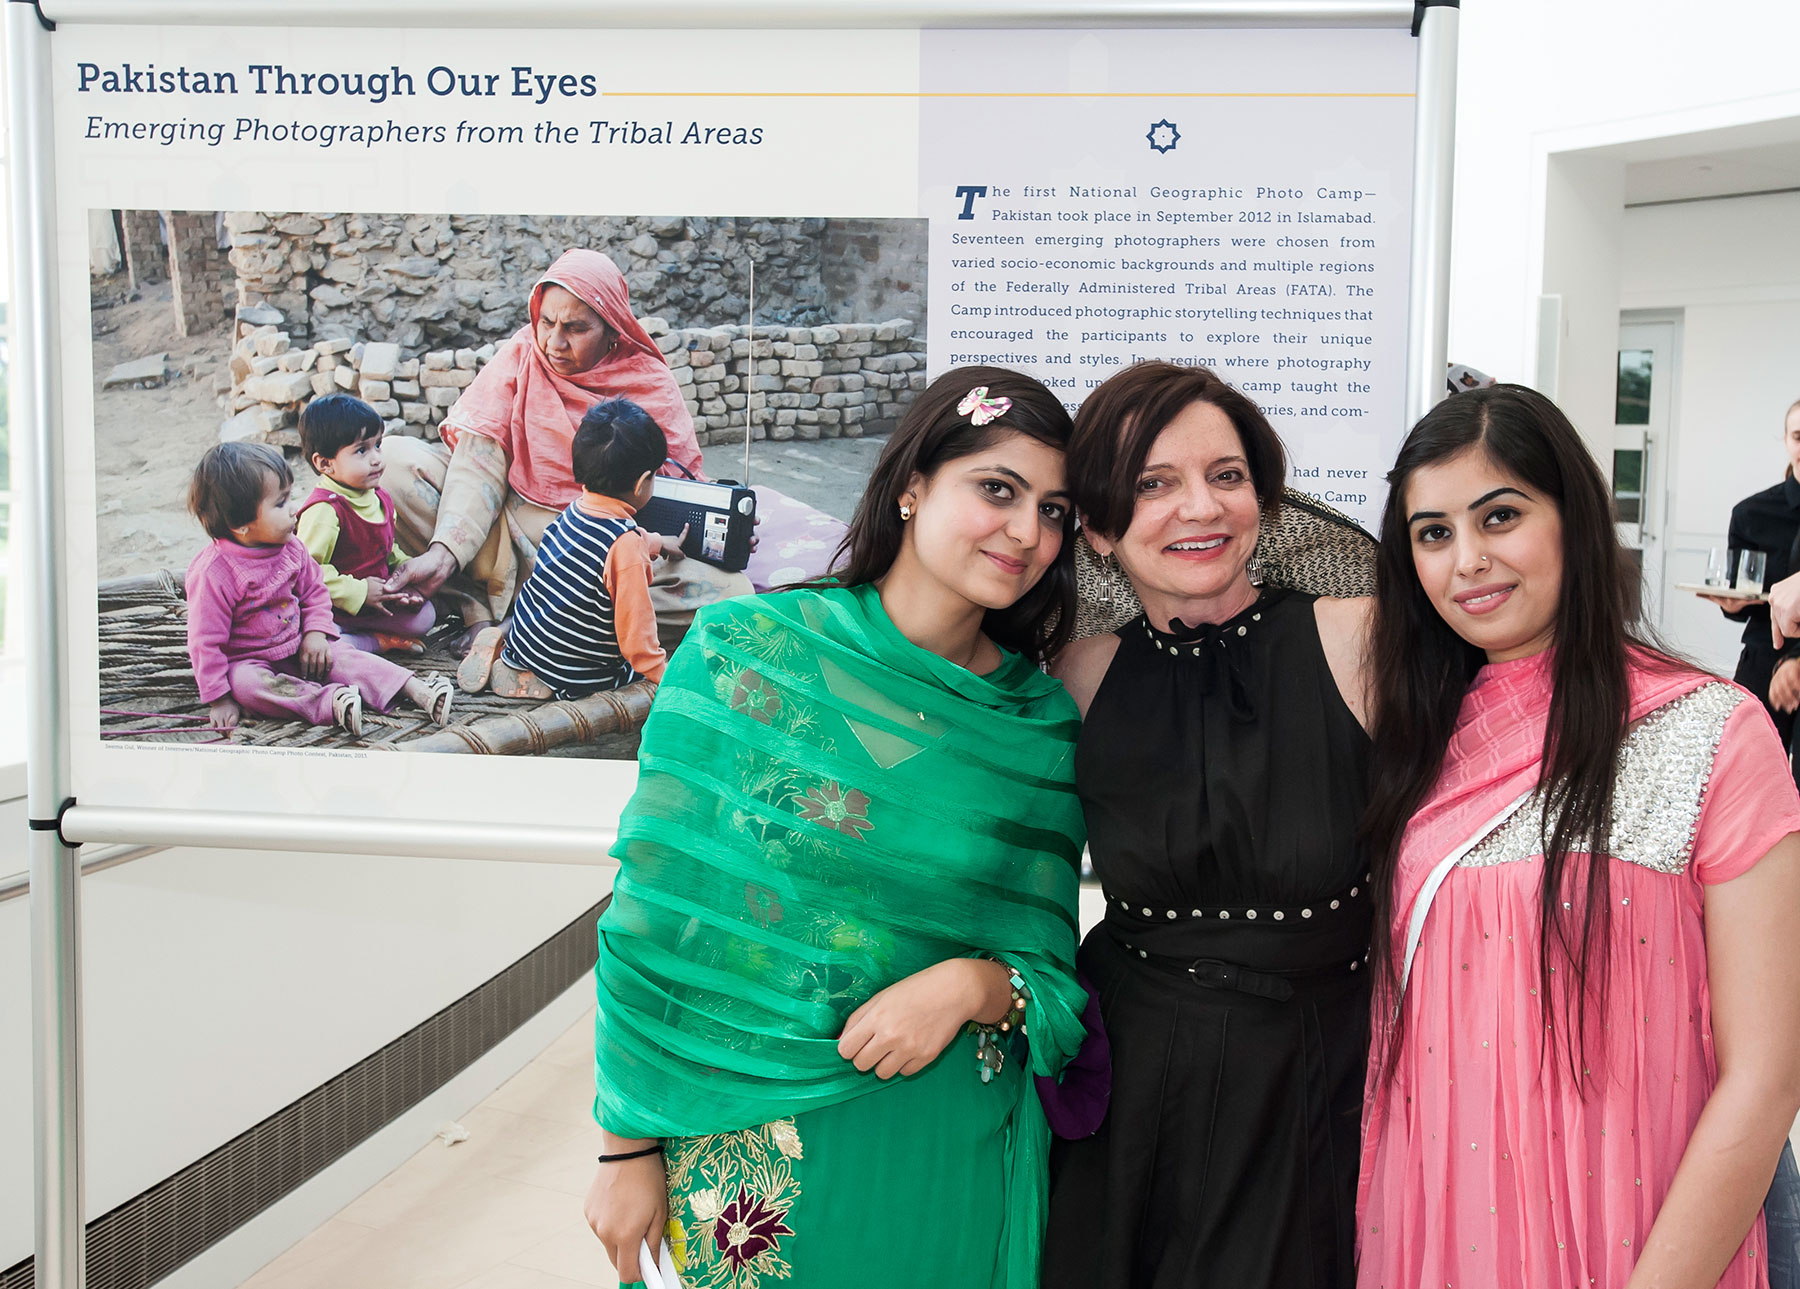 "The exhibition ""Pakistan Through Our Eyes: Emerging Photographers from the Tribal Areas"" was presented on June 12, 2013 at the United States Institute of Peace in Washington, D.C. The exhibition highlighted the work of 17 emerging photographers from the Federally Administered Tribal Areas (FATA) of Pakistan who participated in two National Geographic Photo Camps. National Geographic Photo Camp Pakistan is a collaboration of USAID, National Geographic and Internews. Curators Without Borders provided exhibition curation and graphic design. Photo: imijphoto.com"